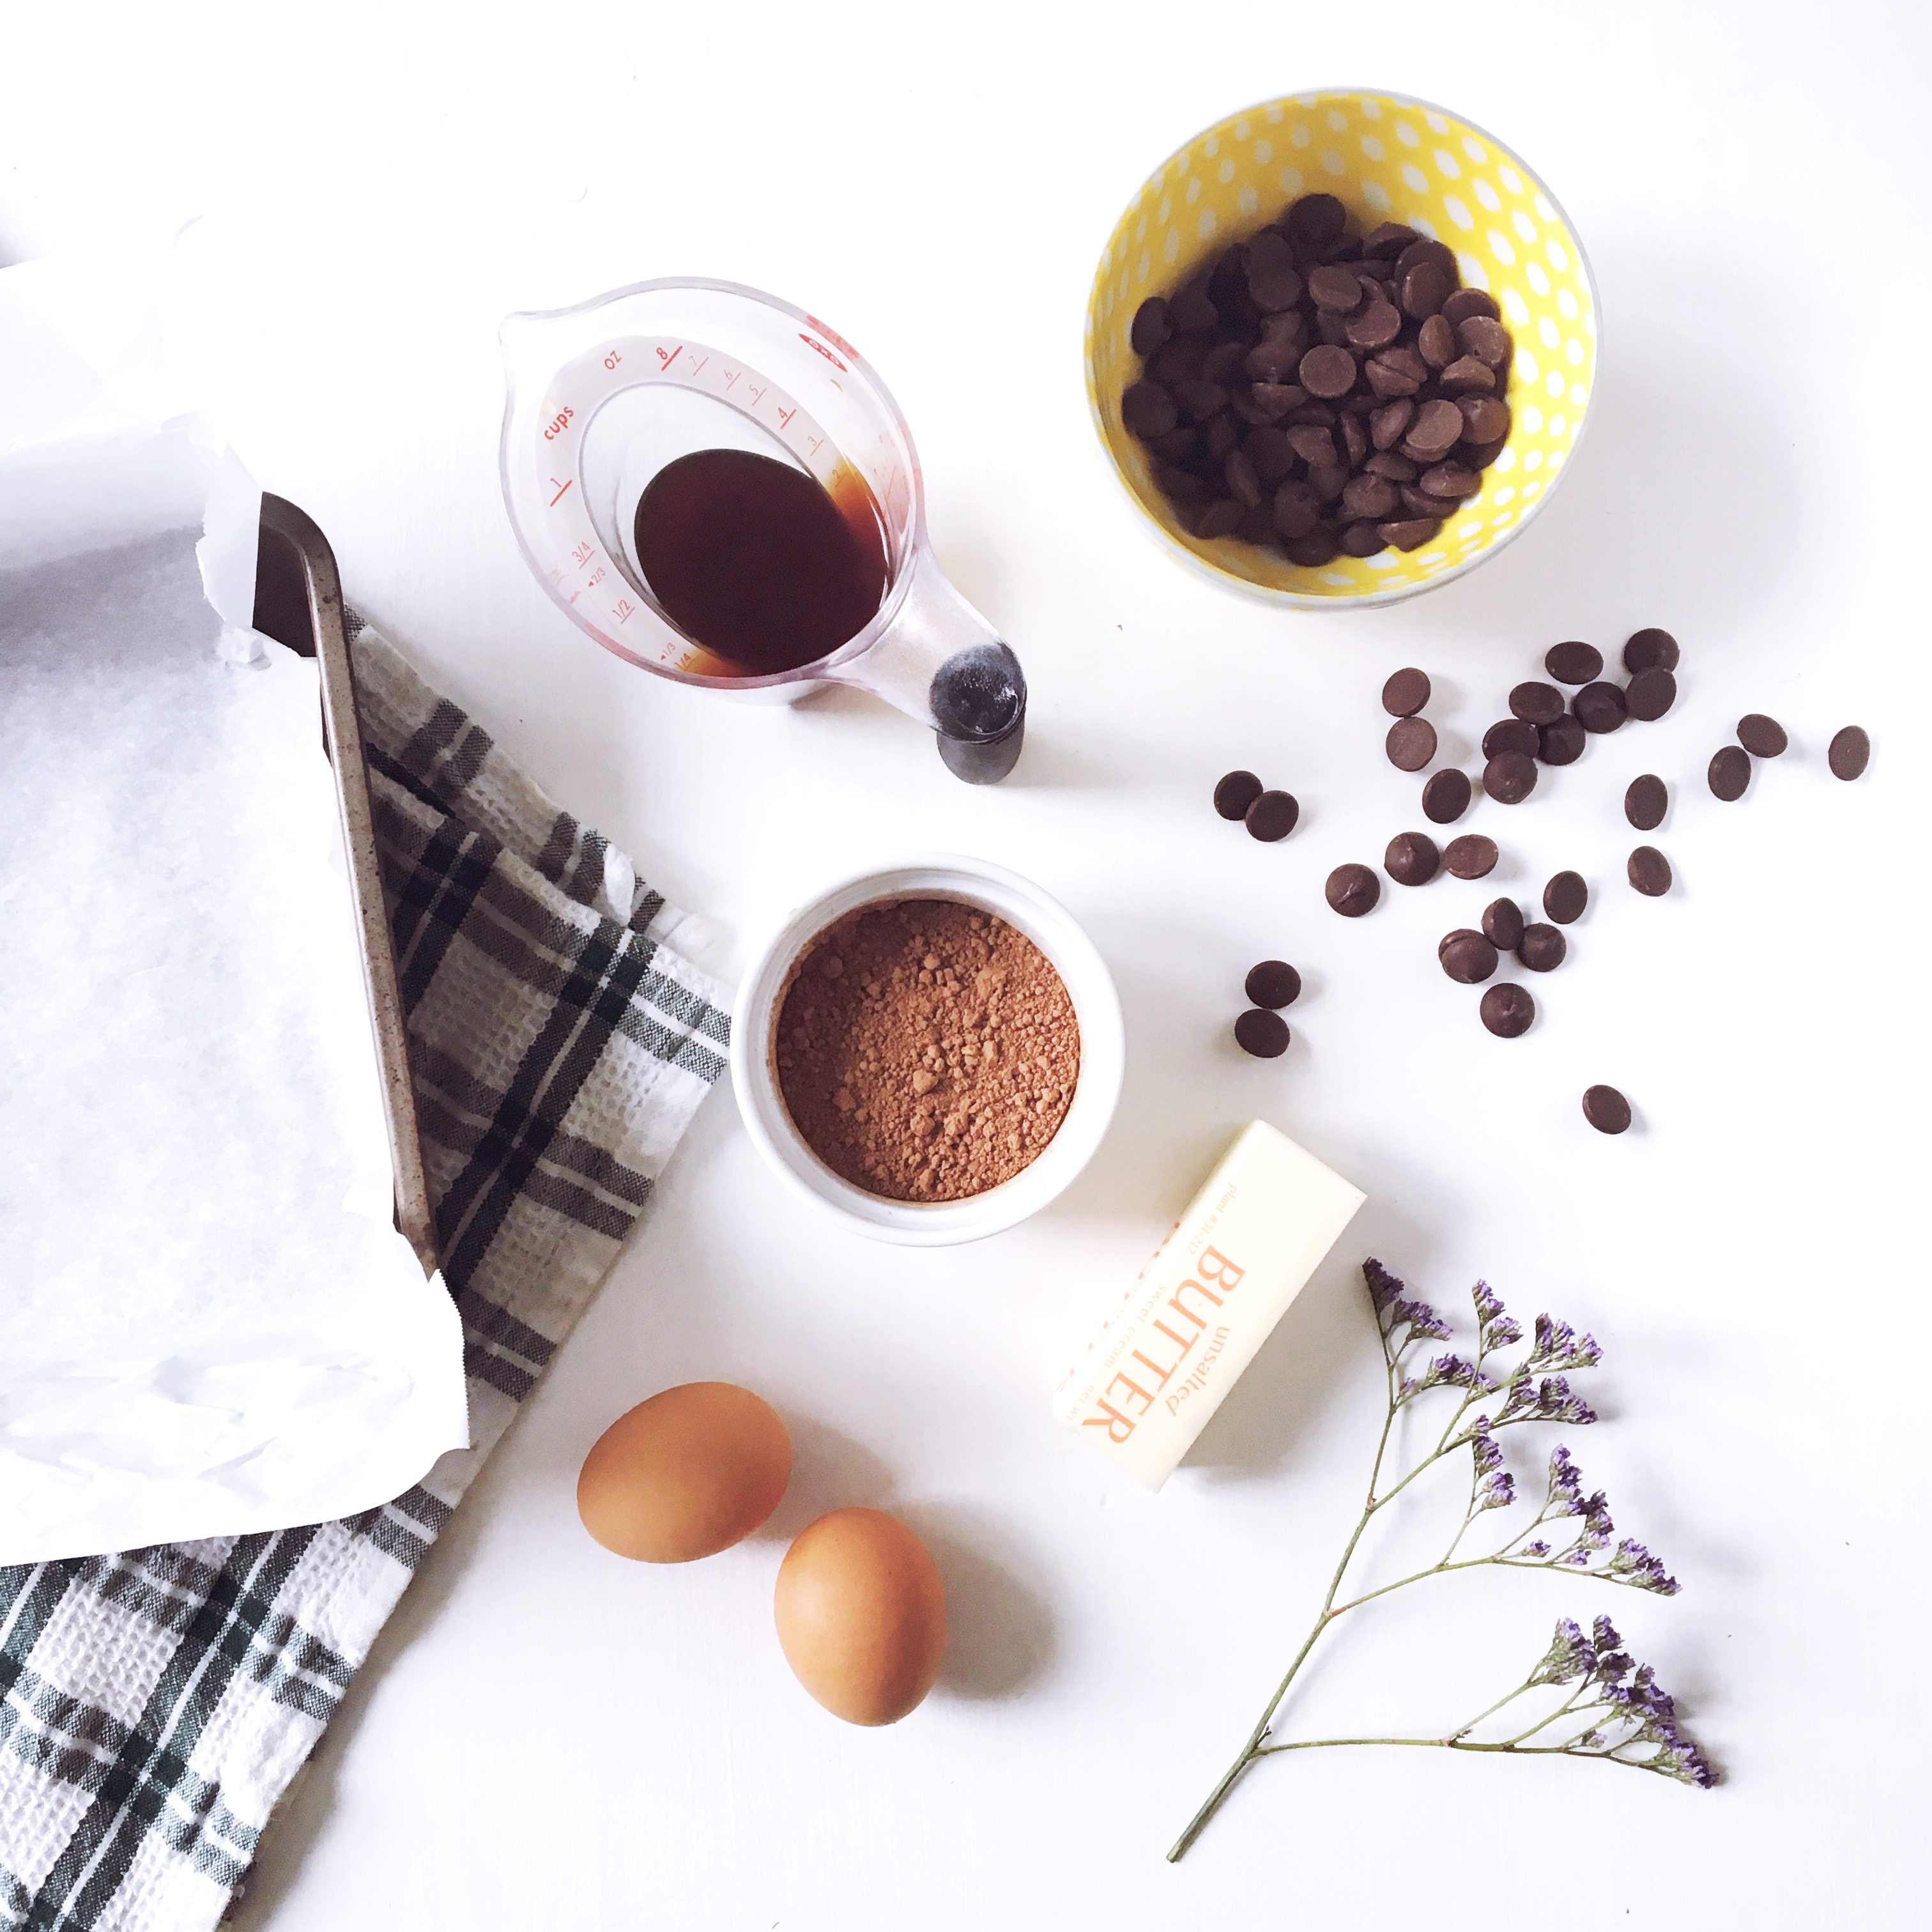 Grain Free Espresso Brownie Ingredients